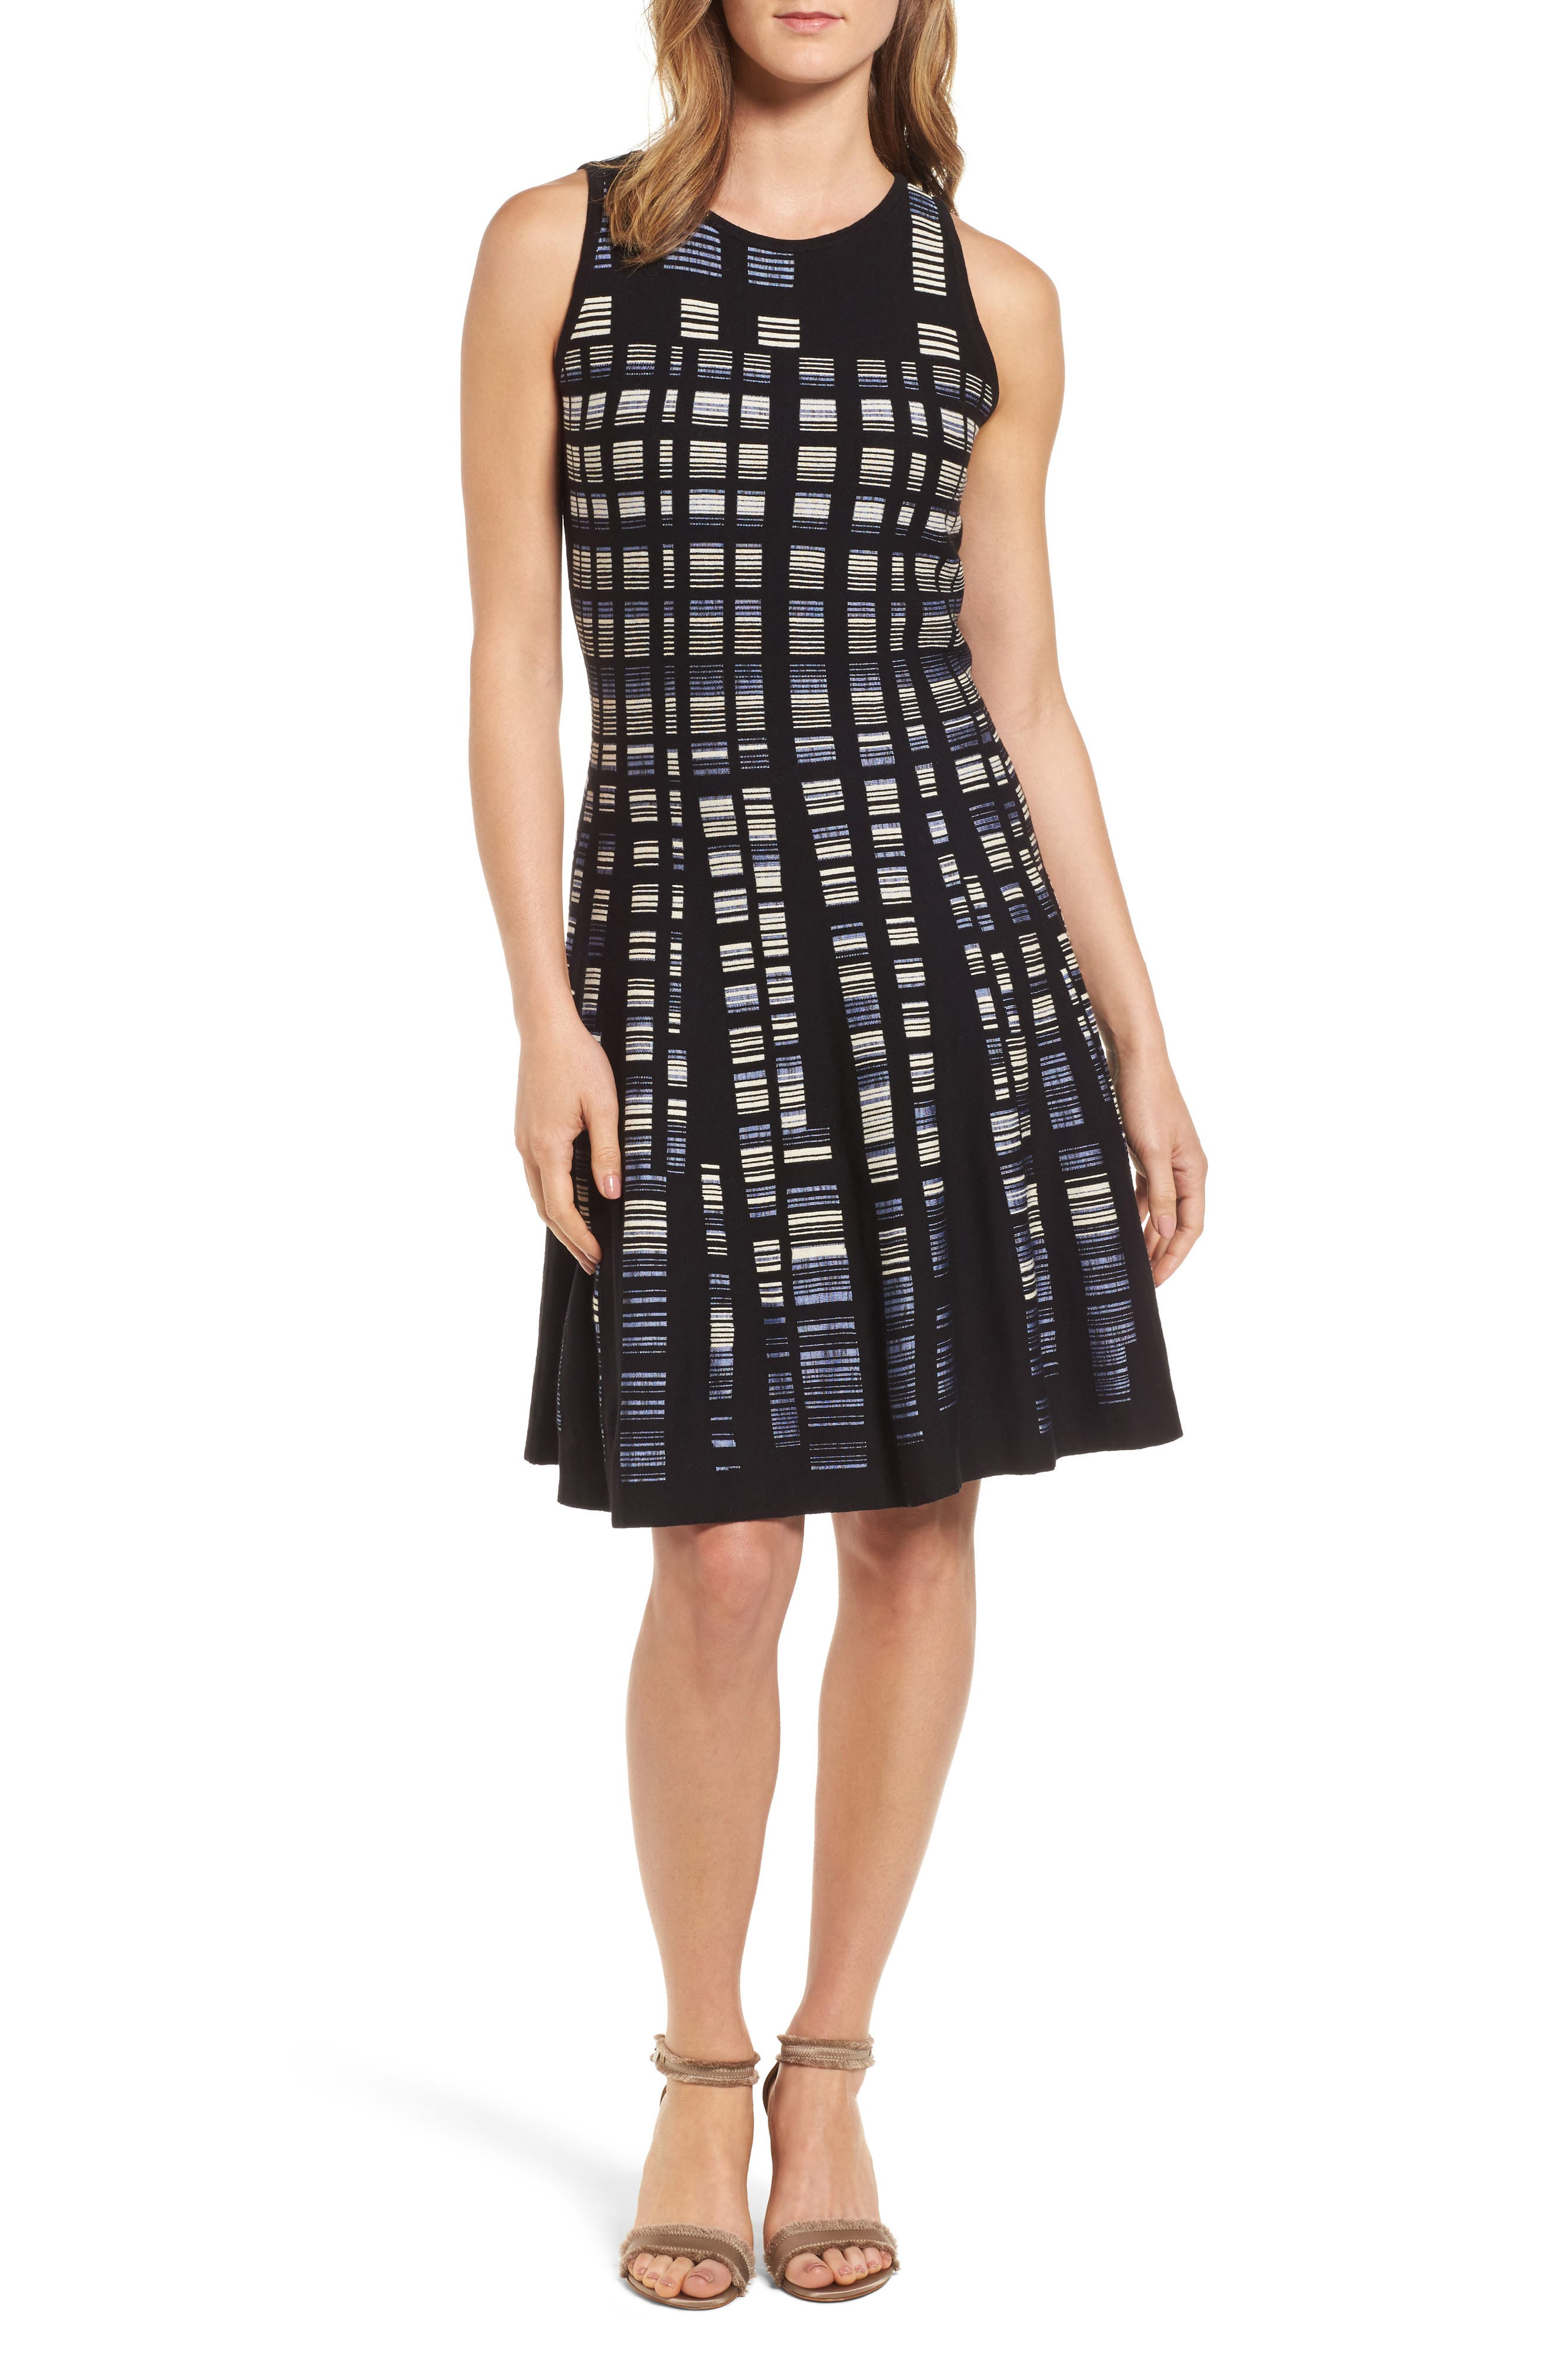 Alternate Image 1 Selected - NIC+ZOE Crystal Cove Twirl Fit & Flare Dress